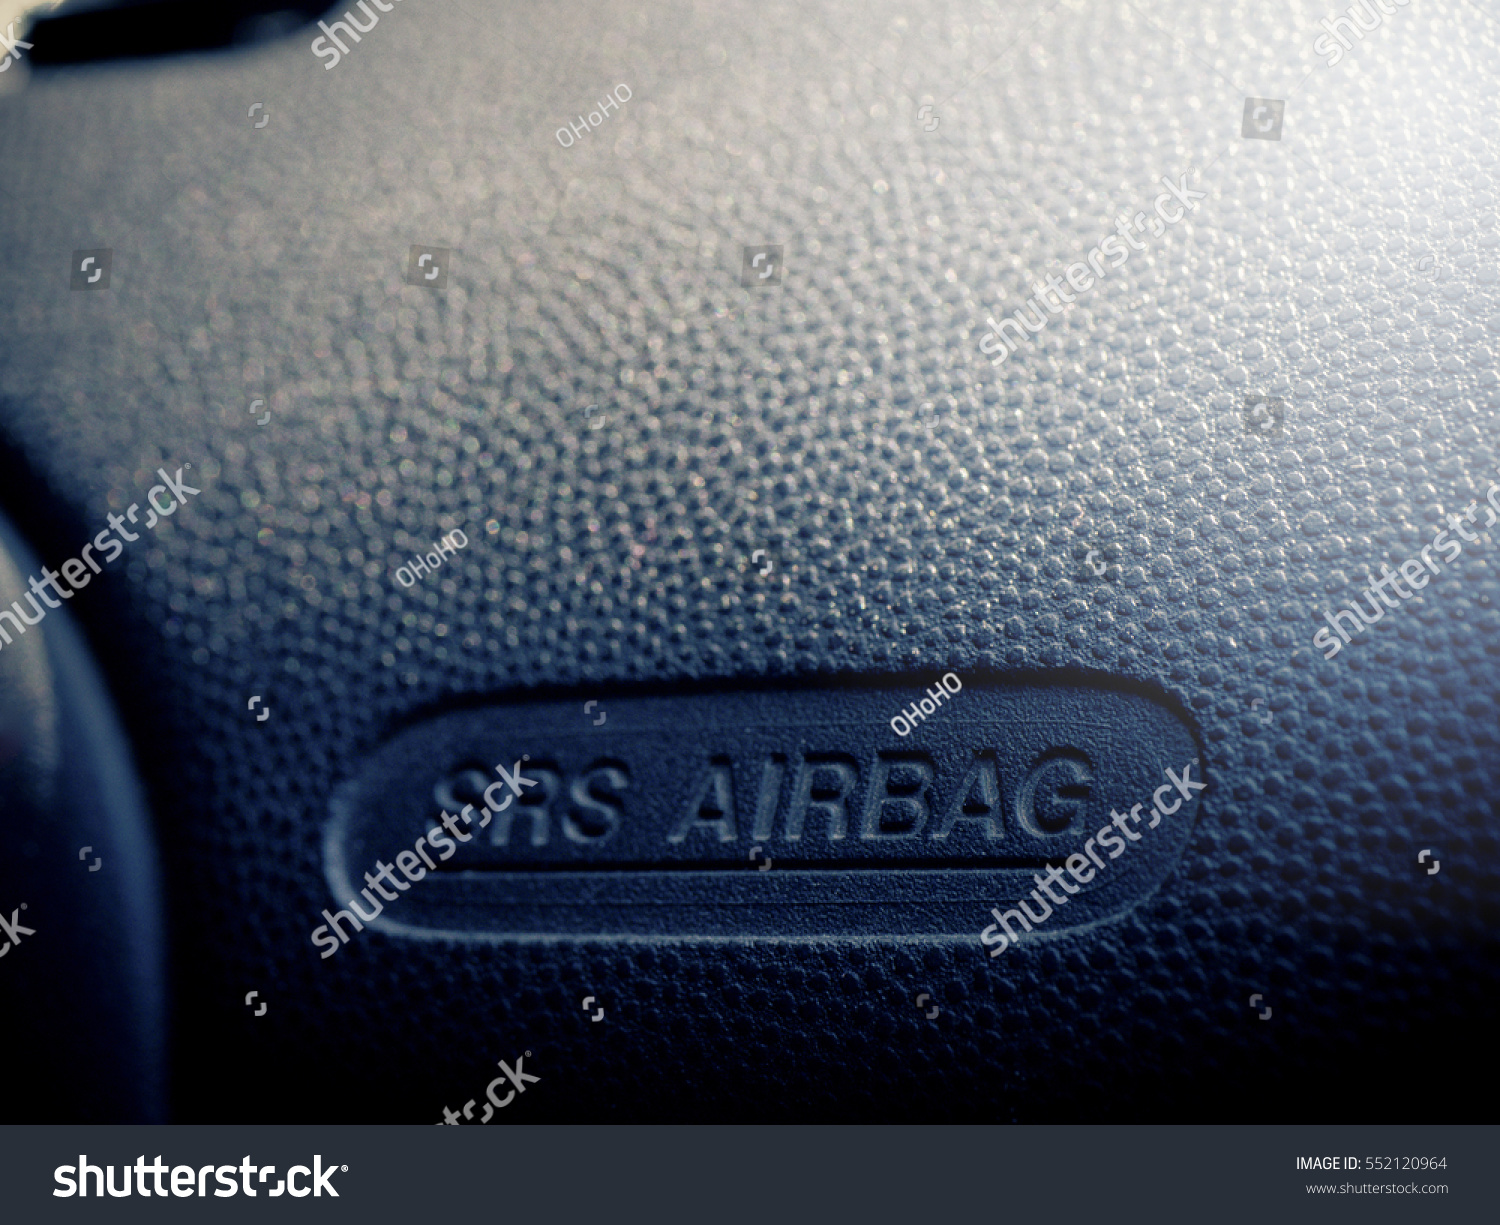 Car Air bag logo on the front seat panel